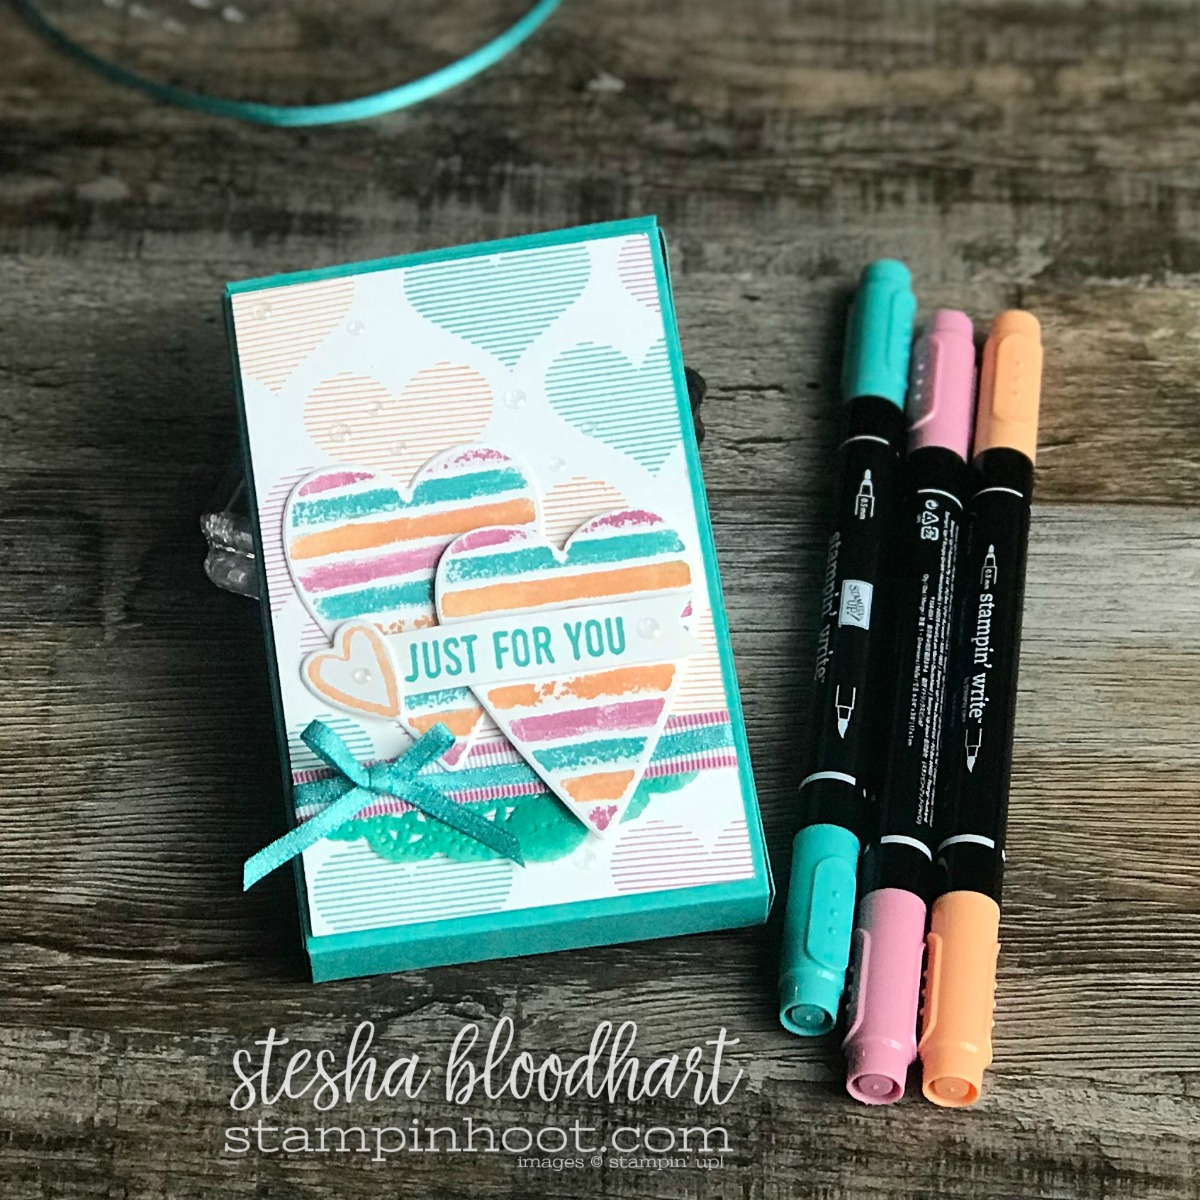 Sure Do Love You Bundle & Heart Happiness Stamp Set by Stampin' Up! for GDP121 Global Design Project 121 Color Challenge #steshabloodhart #stampinhoot #gdp121